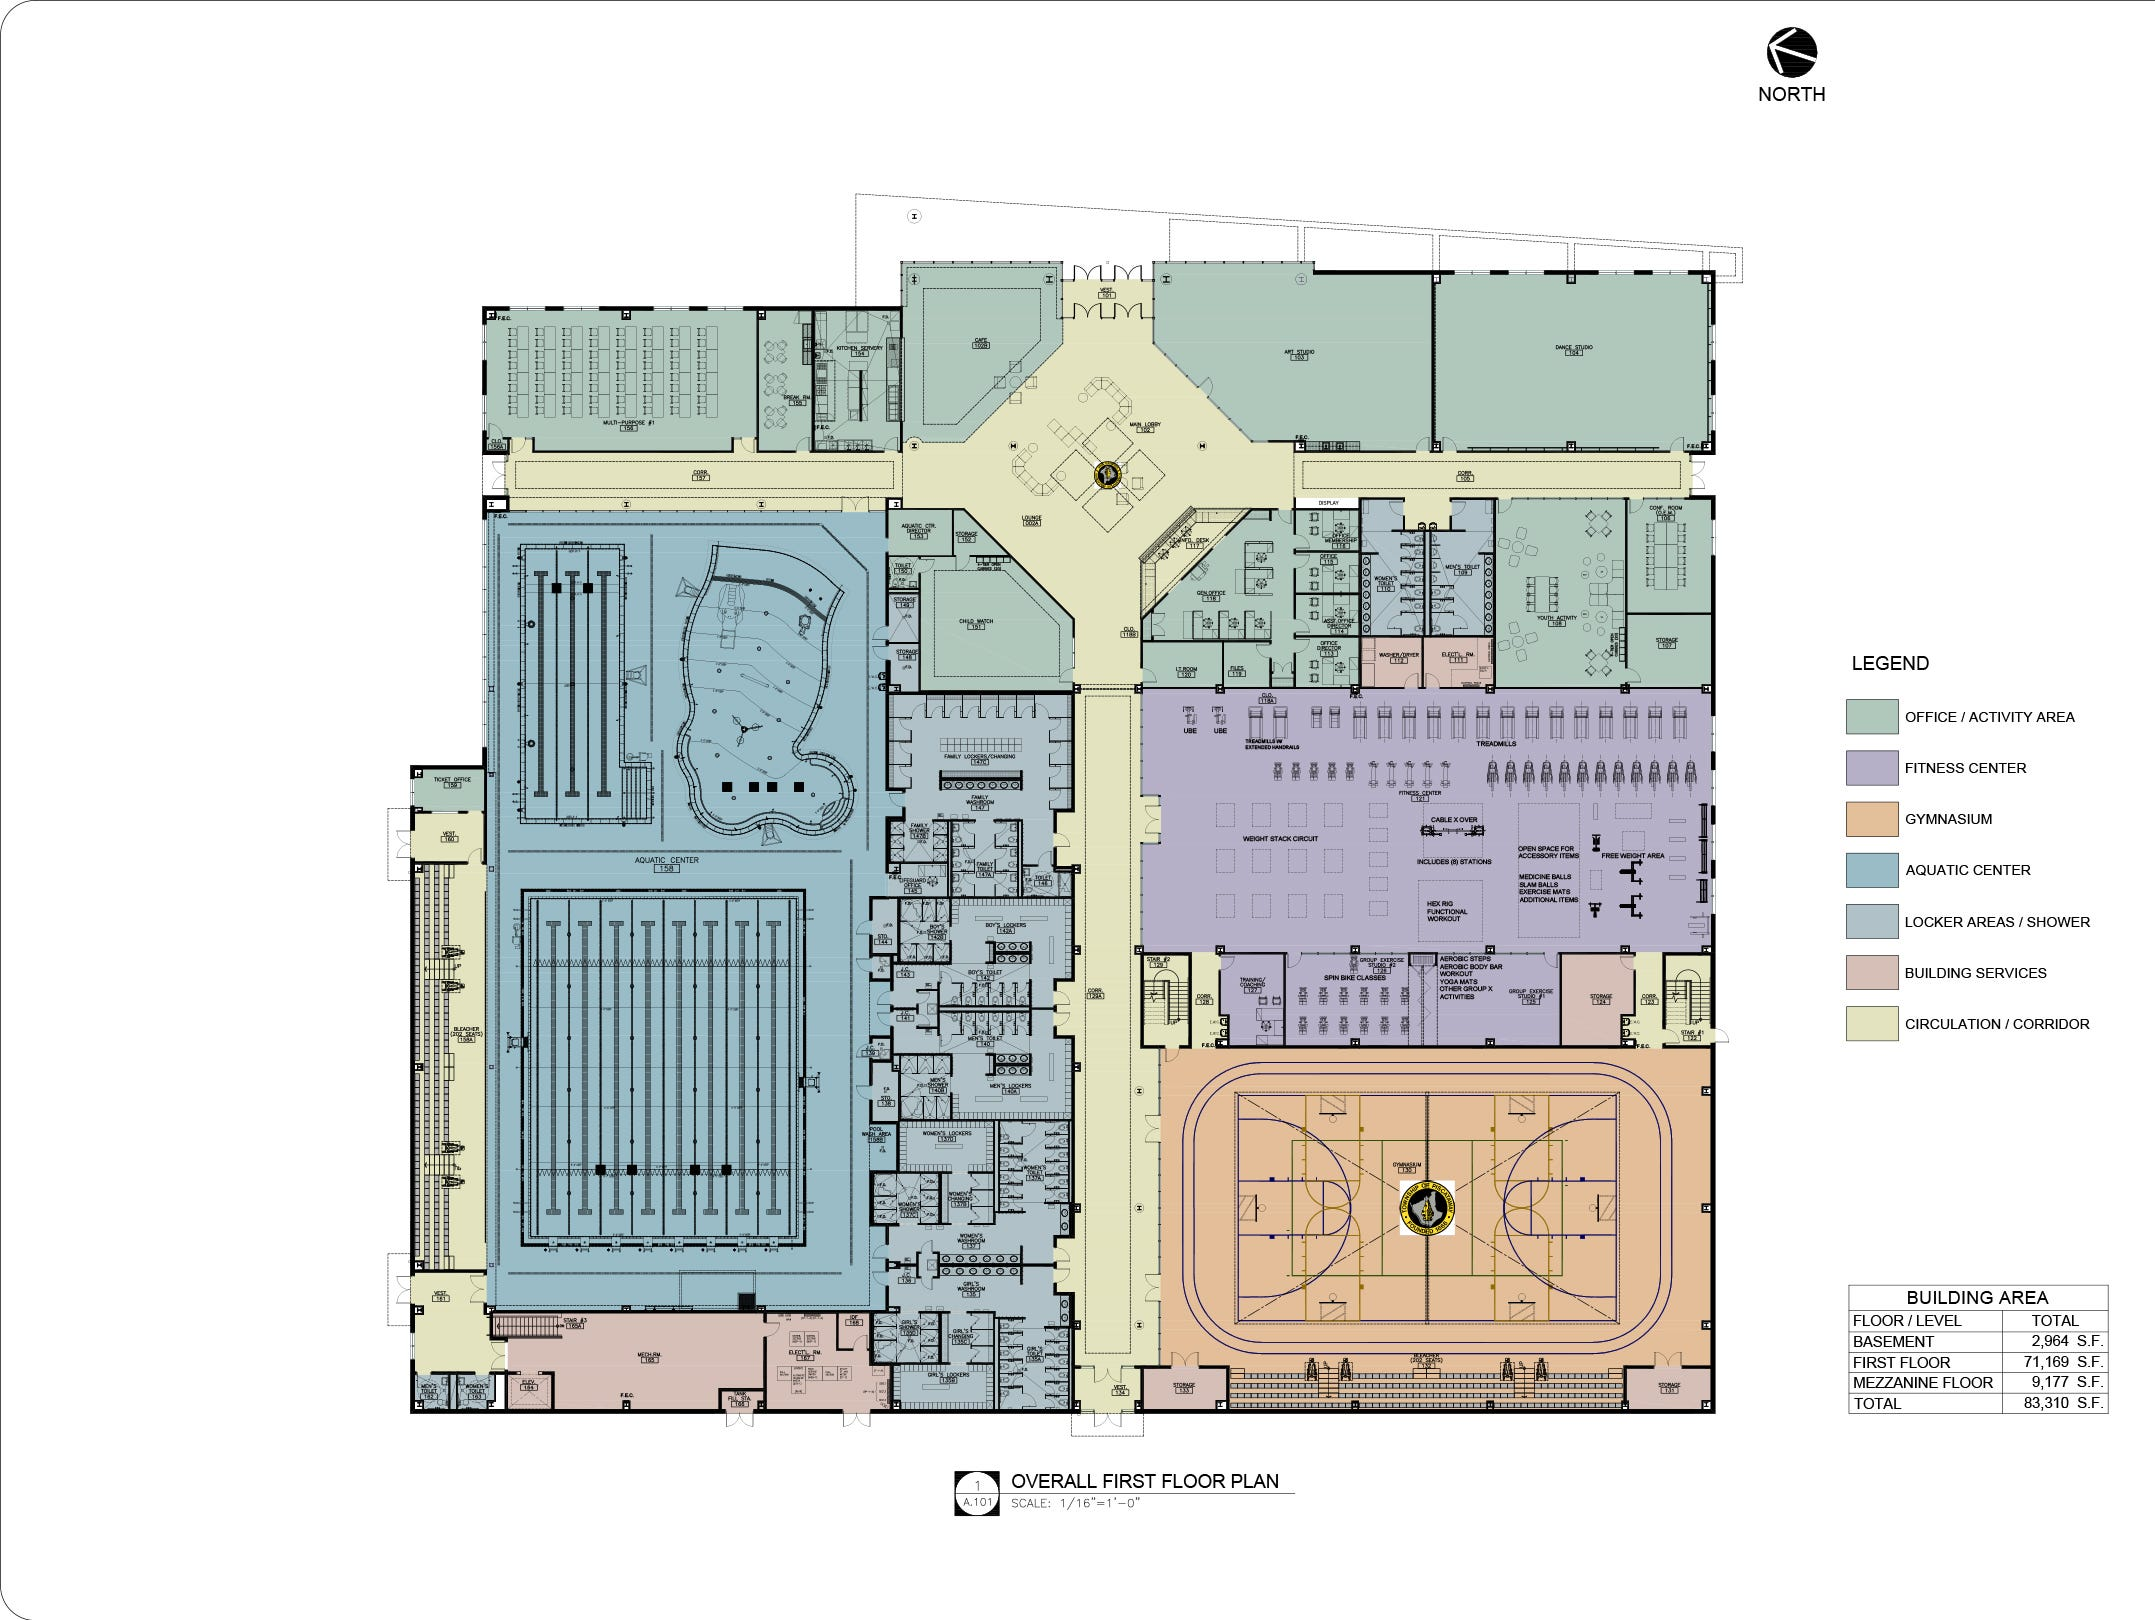 Architectural designs for Piscataway's forthcoming community center.